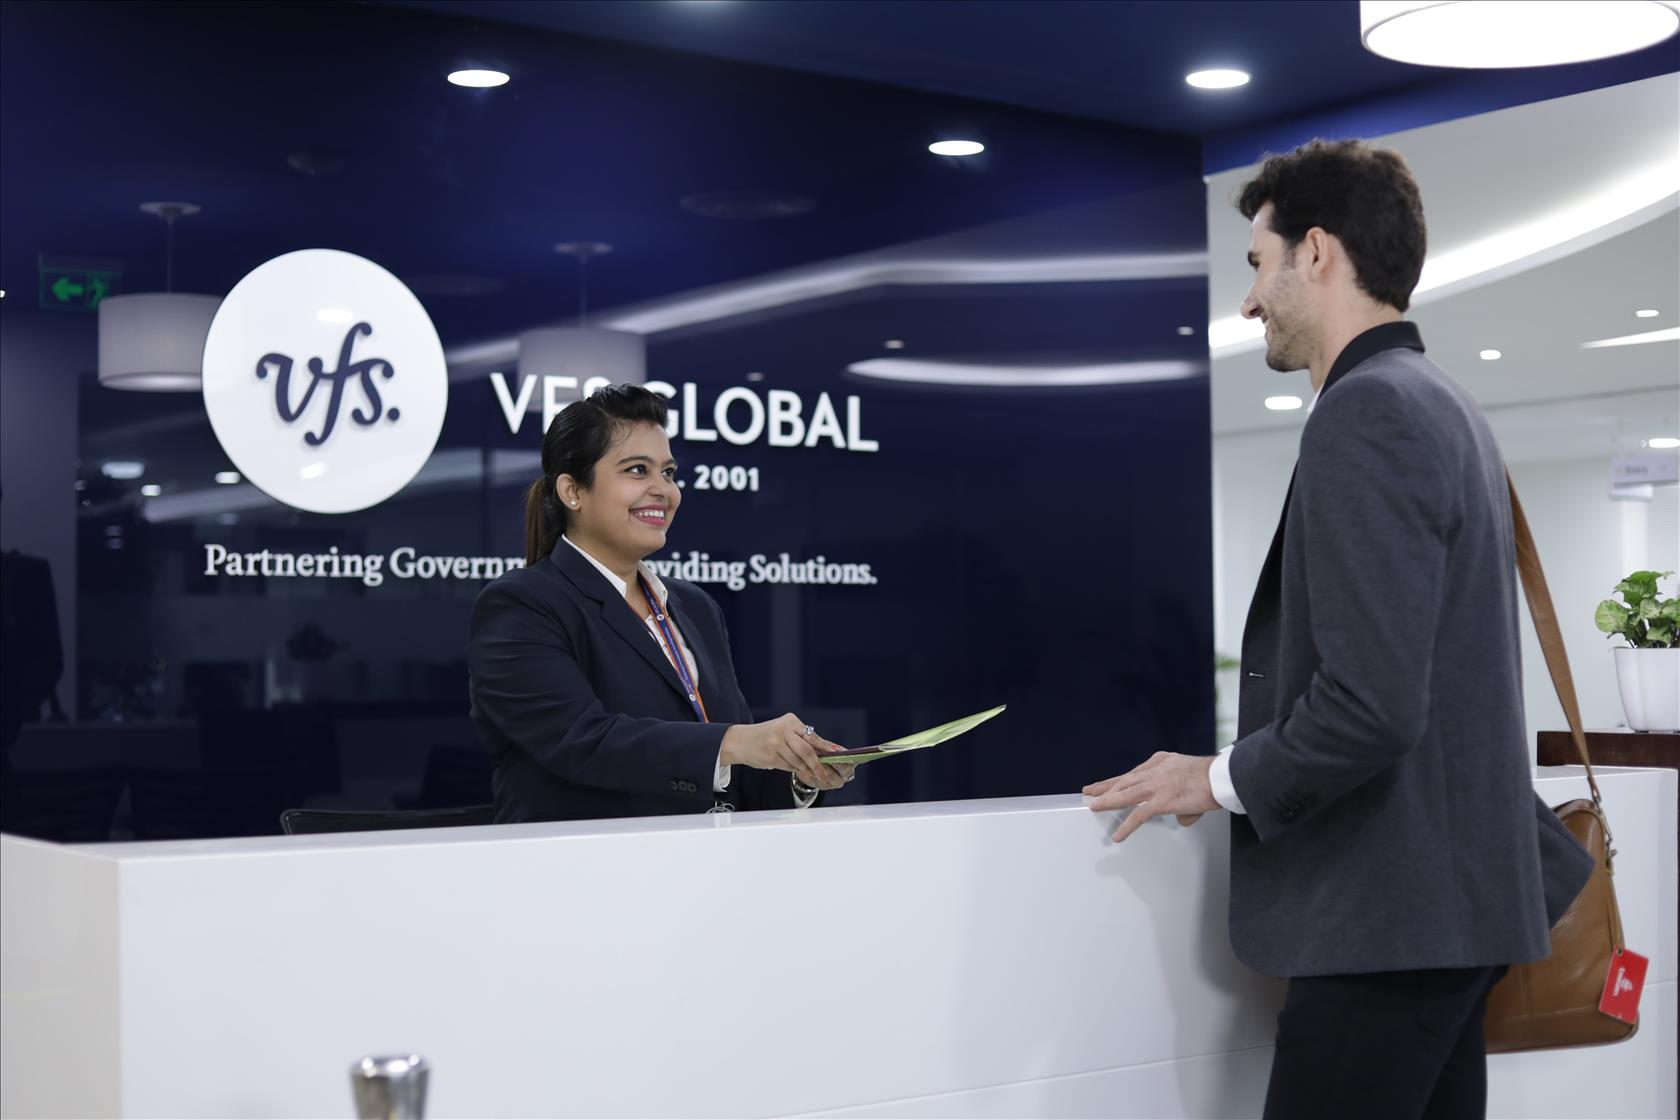 VFS Global processes its 200 millionth application, up from 100